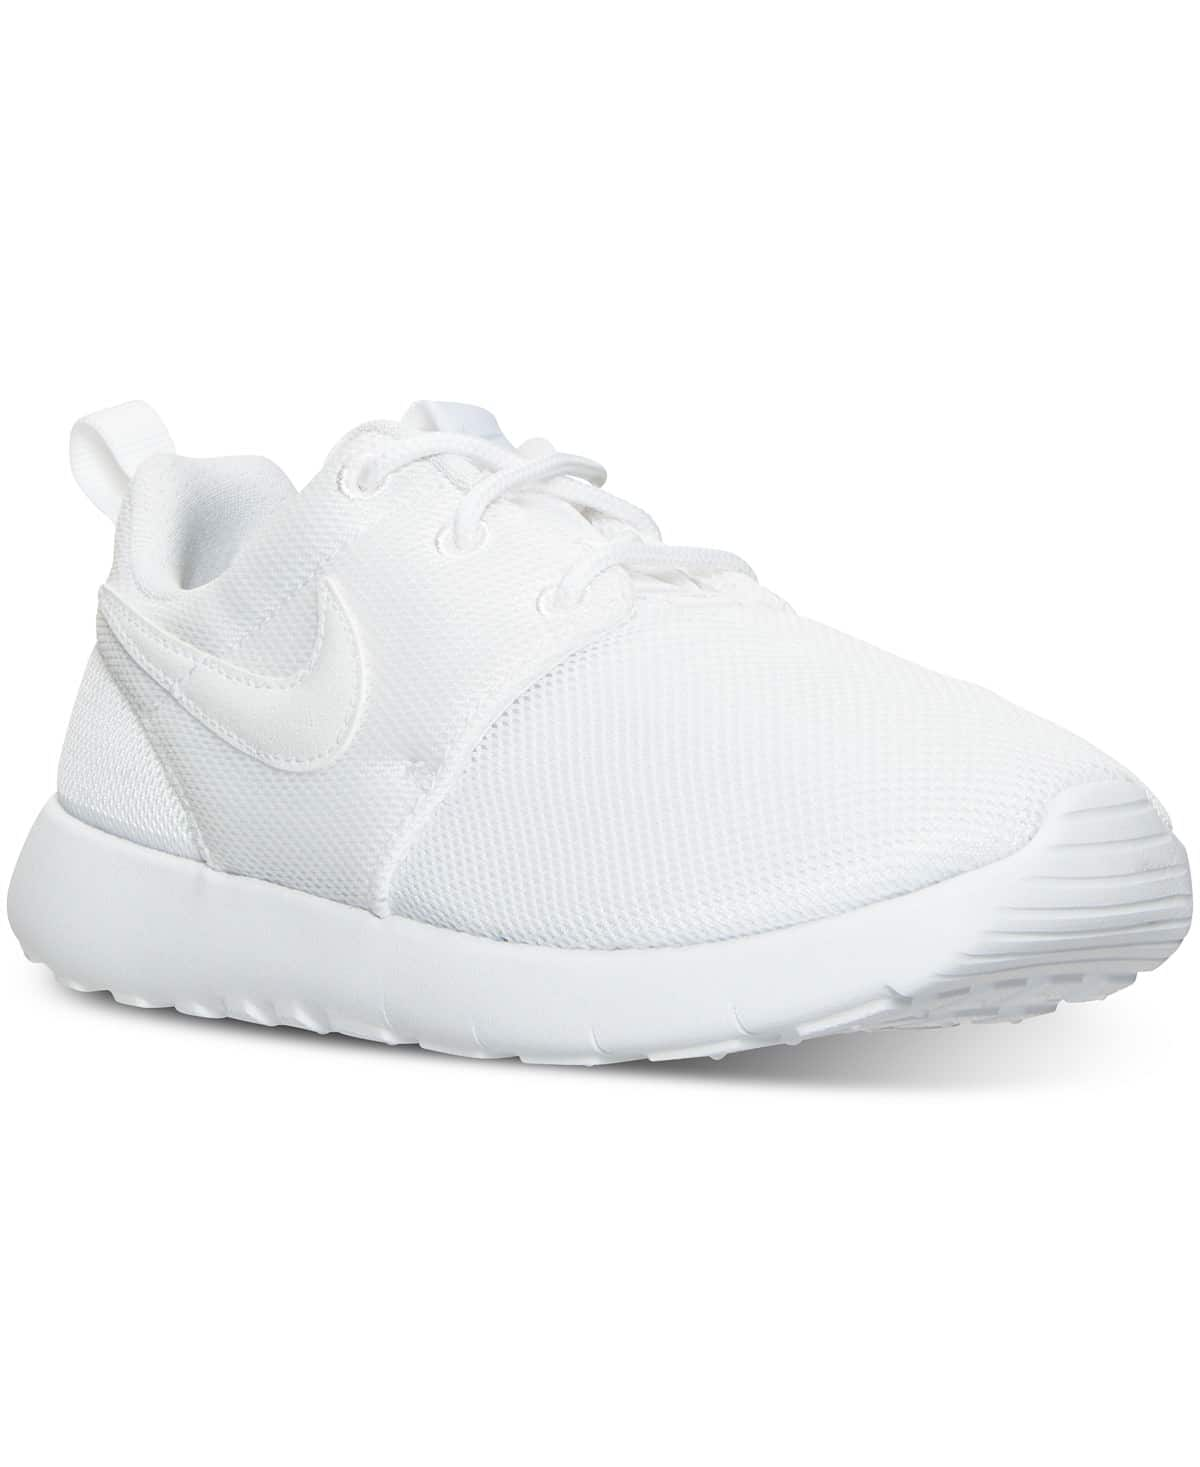 f2672b7ba84 Kids  Shoes  Nike Little Girls  Roshe One Casual Sneakers ...